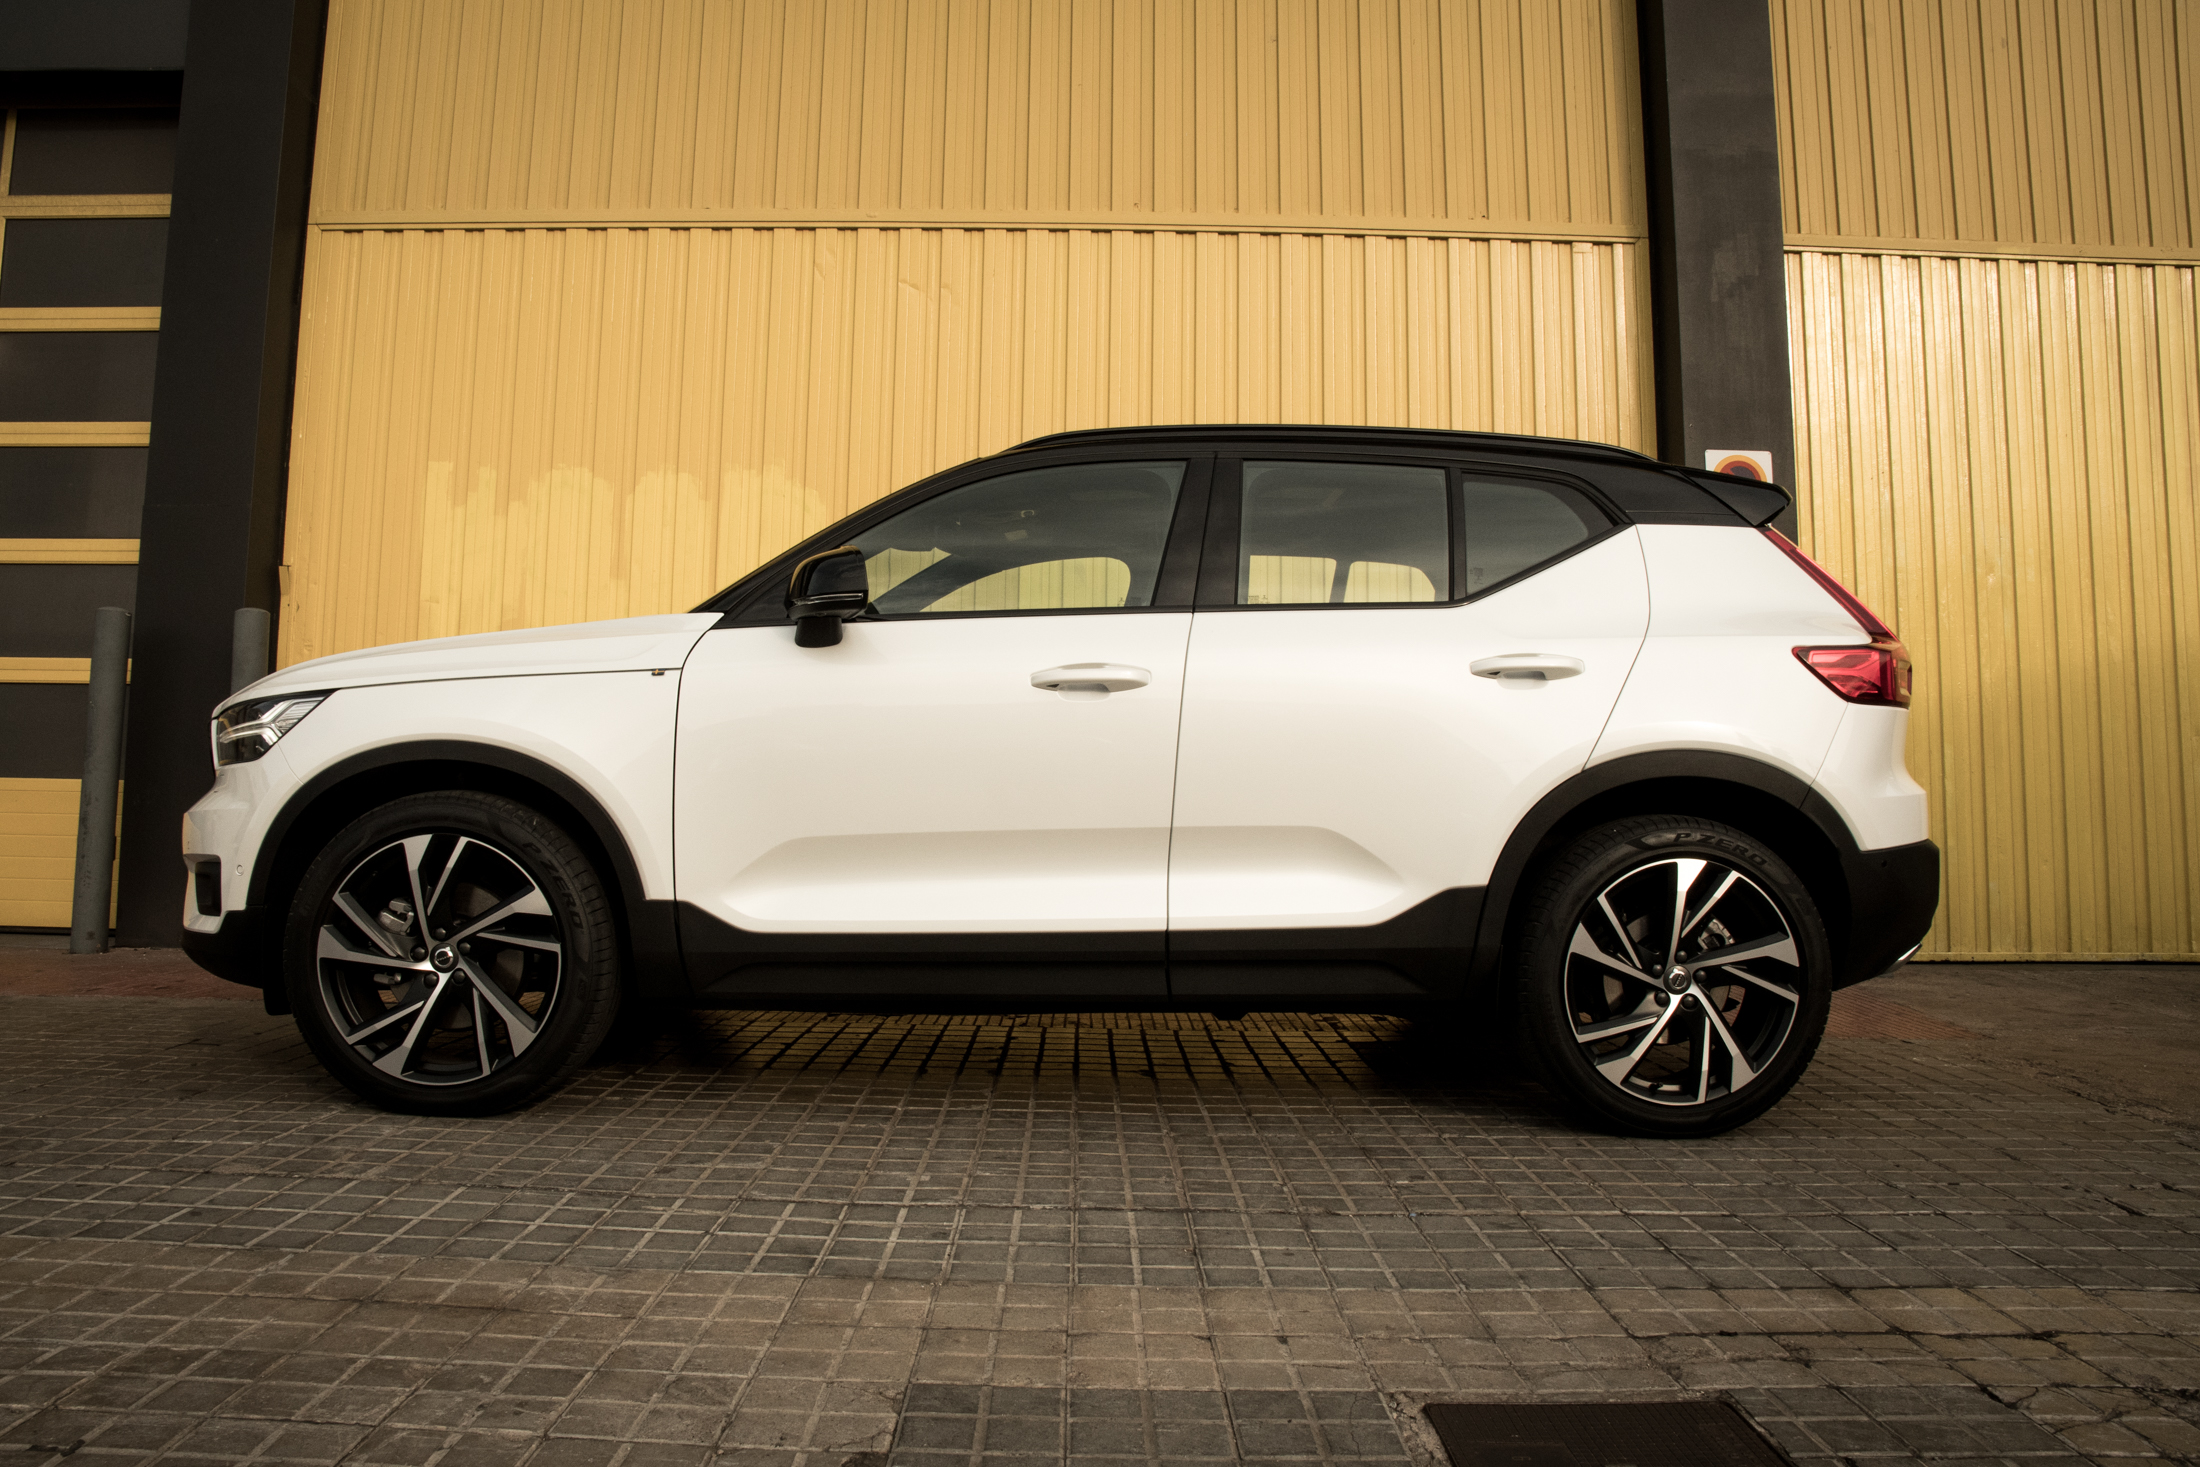 Coolhunting: Test-driving the 2018 Volvo XC40